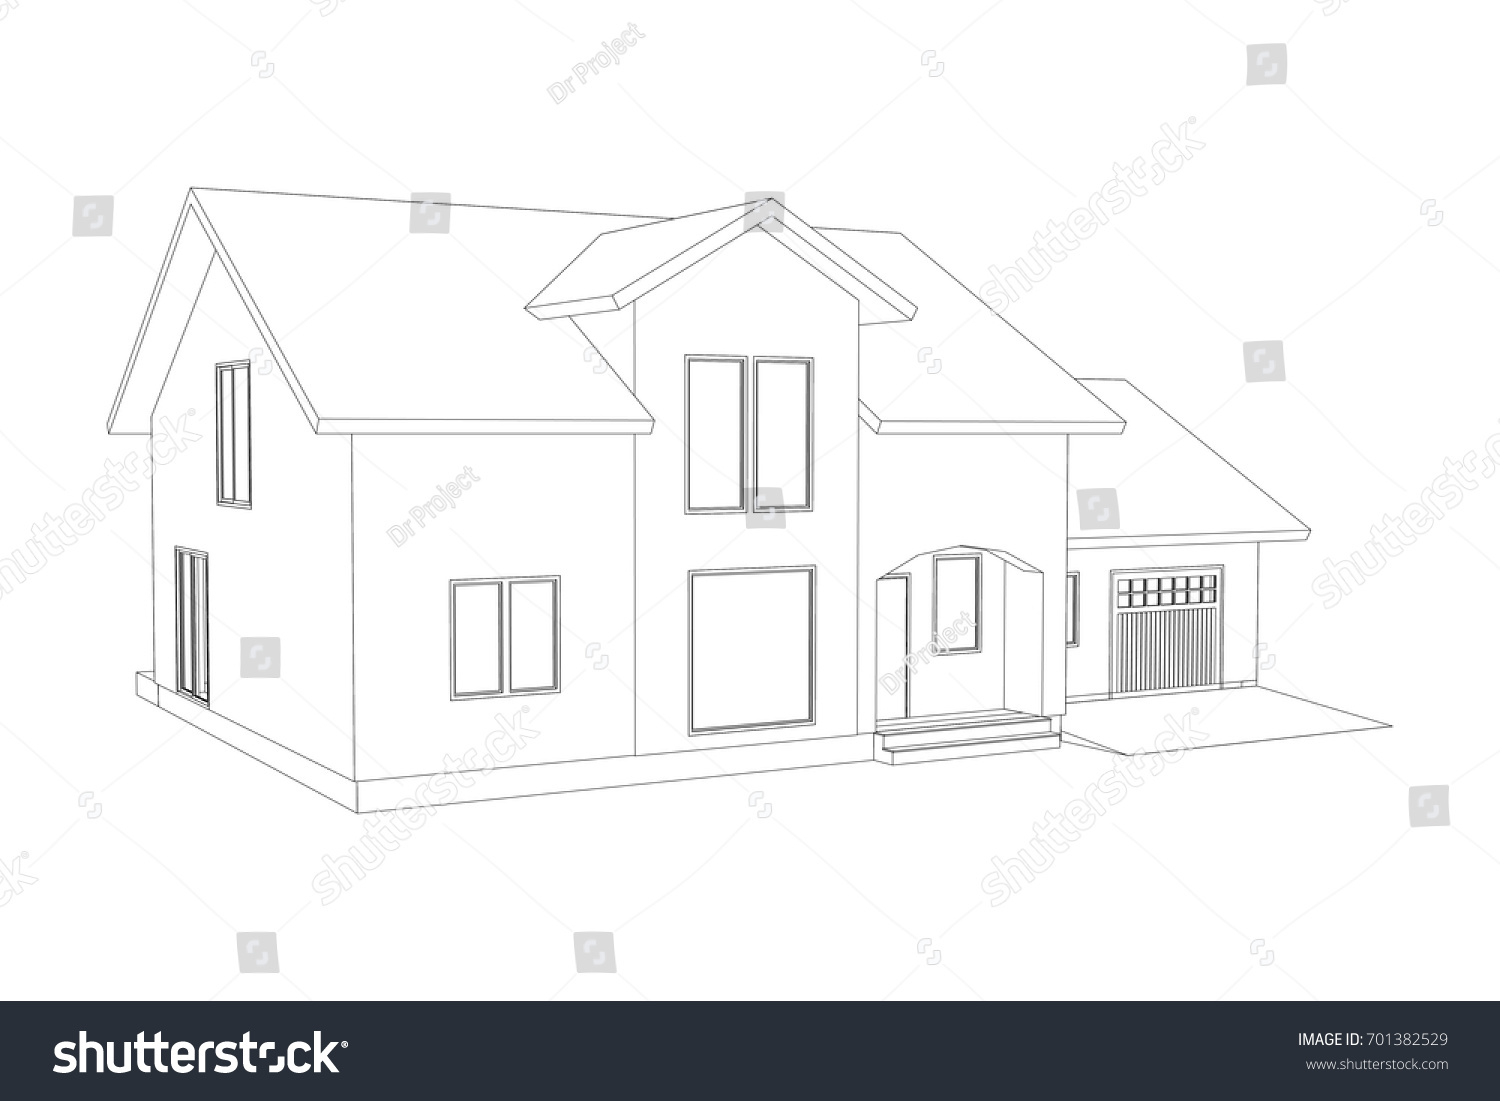 3d suburban house model drawing modern stock vector 701382529 3d suburban house model drawing of the modern building cottage project on white background malvernweather